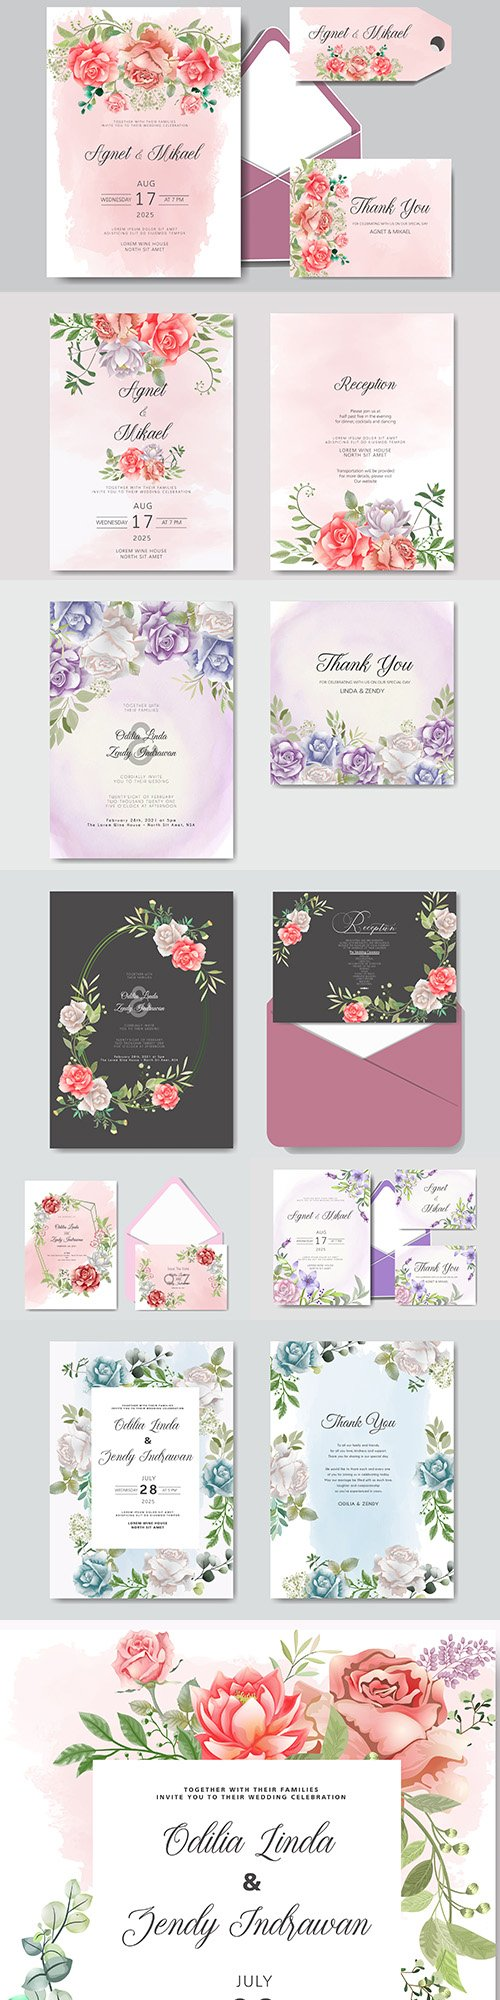 Wedding floral watercolor decorative invitations 23